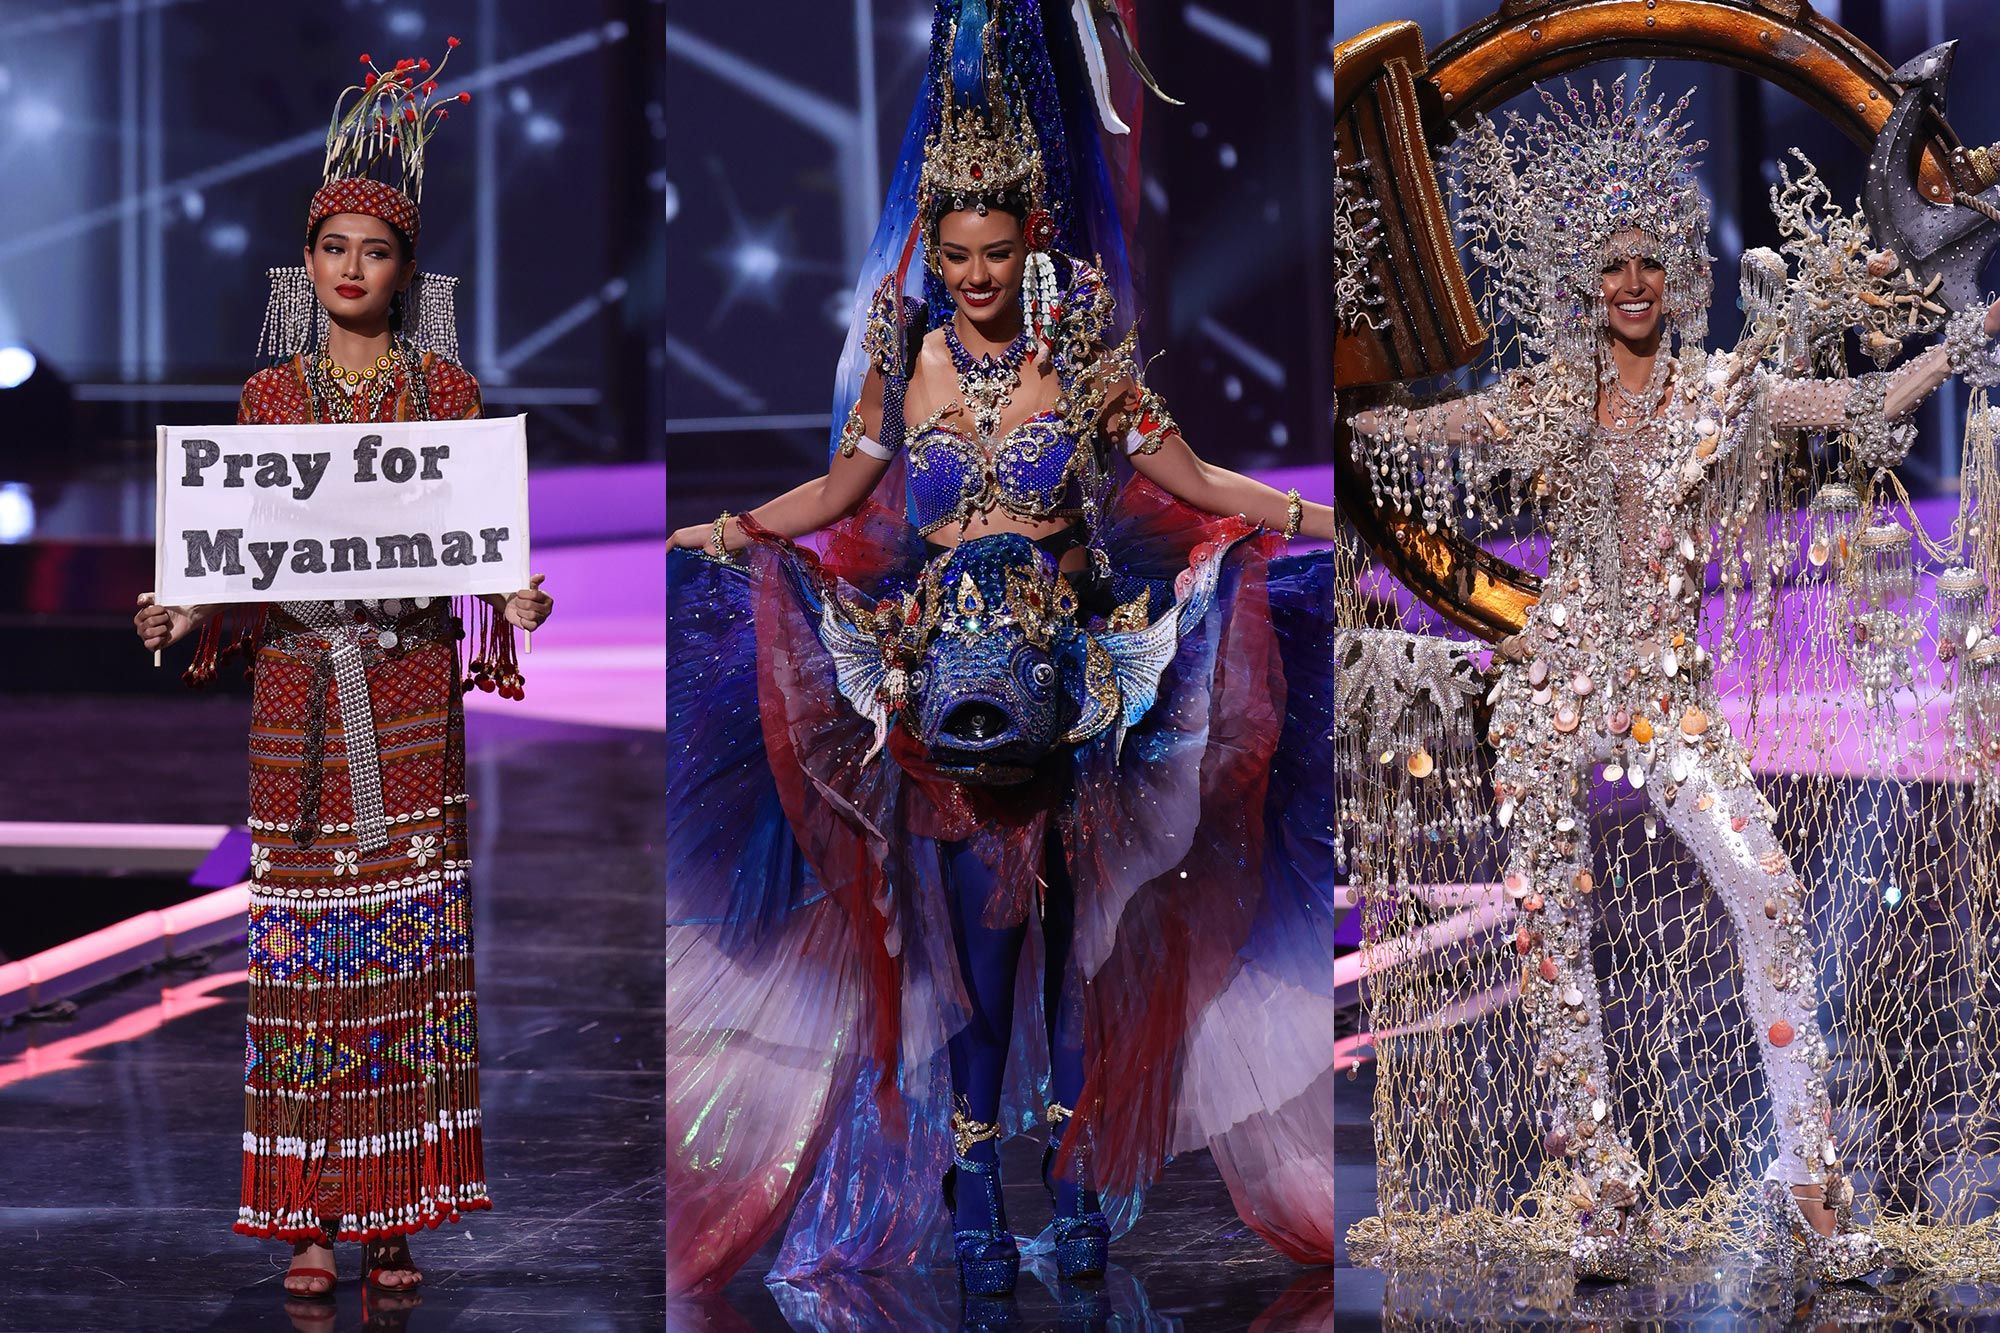 The Best, Worst, and Most Glam Looks We Saw At The 2021 Miss Universe National Costume Show